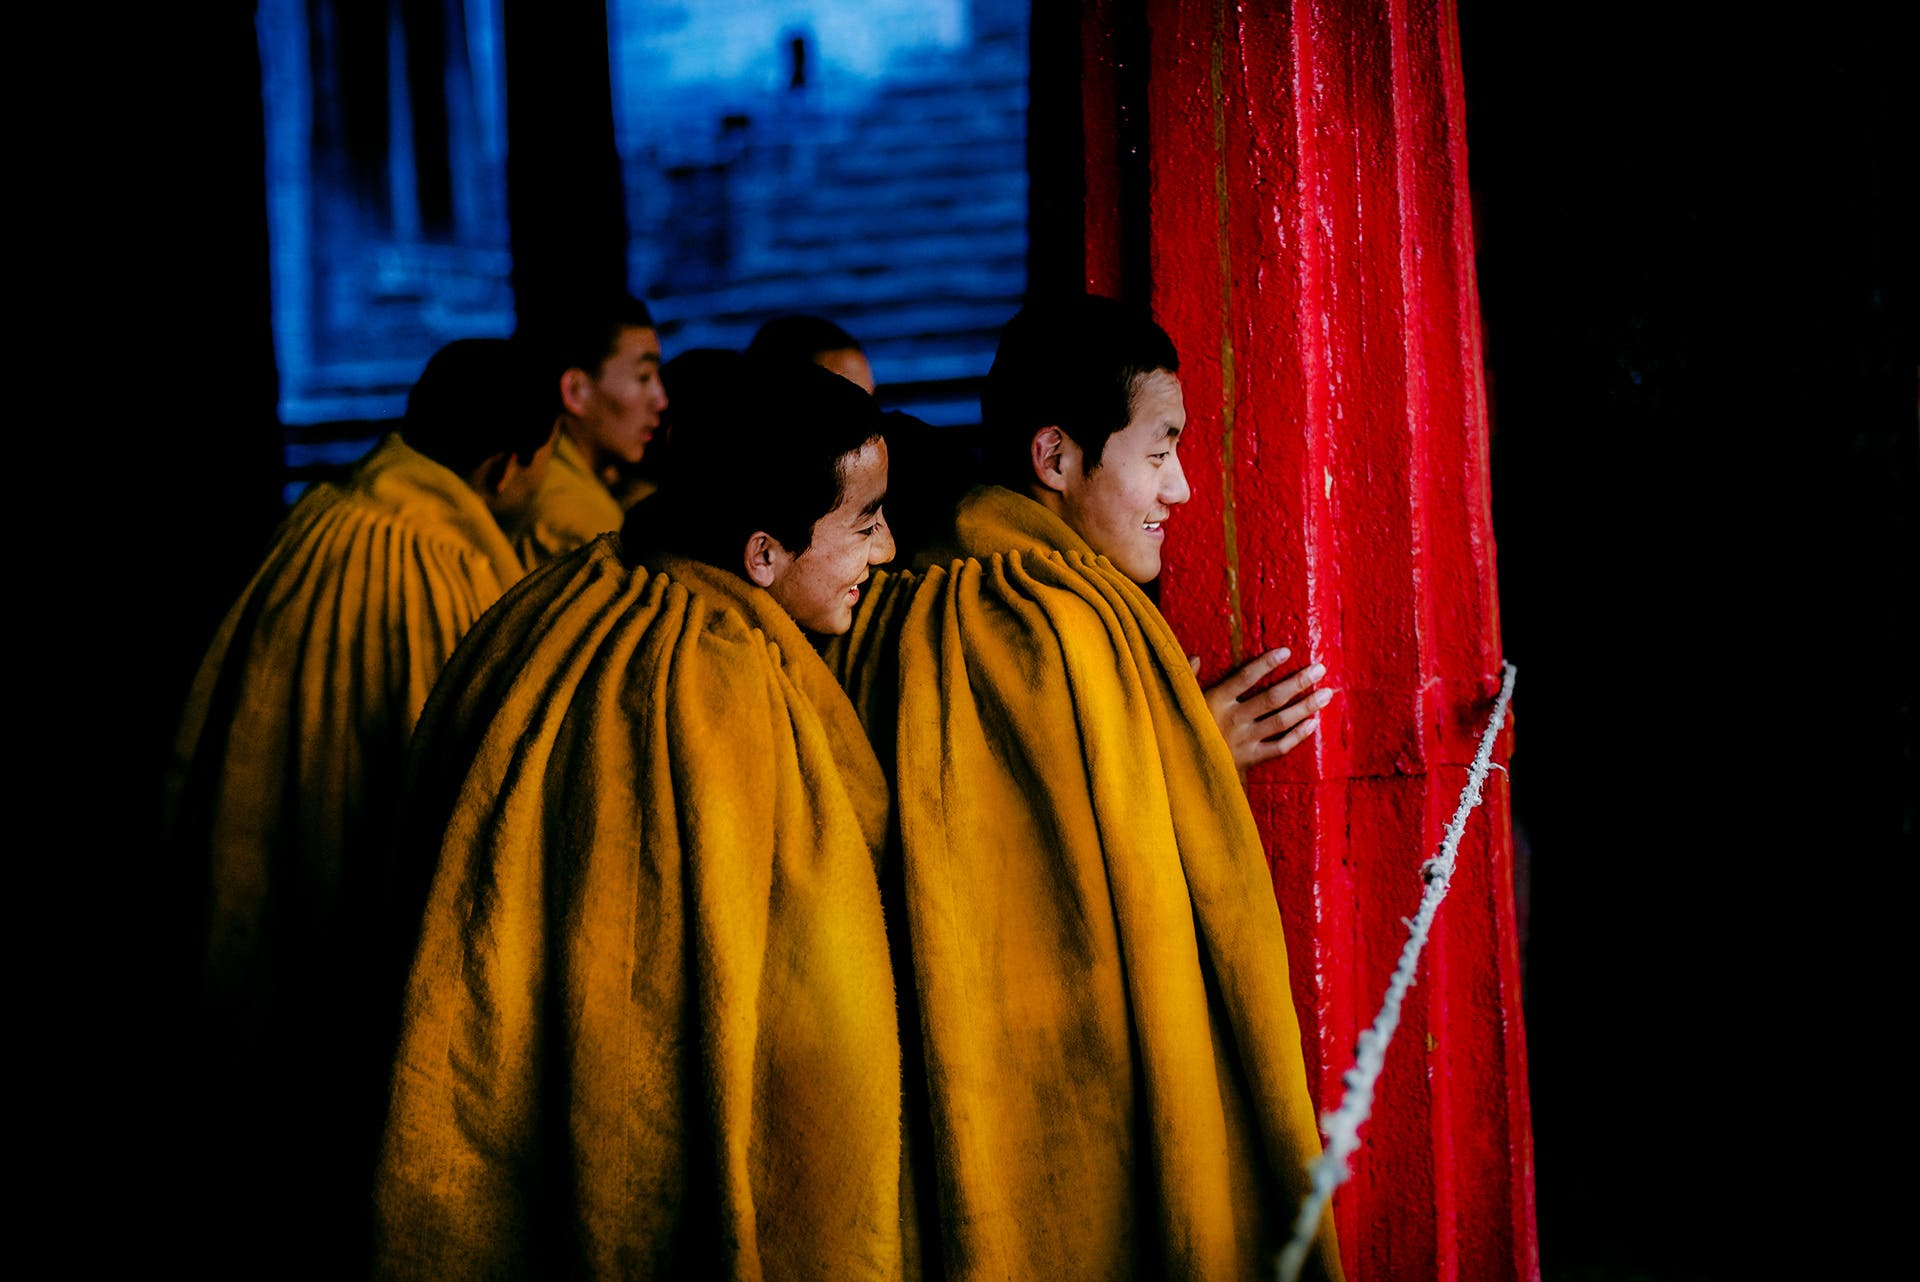 Jakub Rybicki Shares a Fascinating Slice of Buddhist Life in Tibet